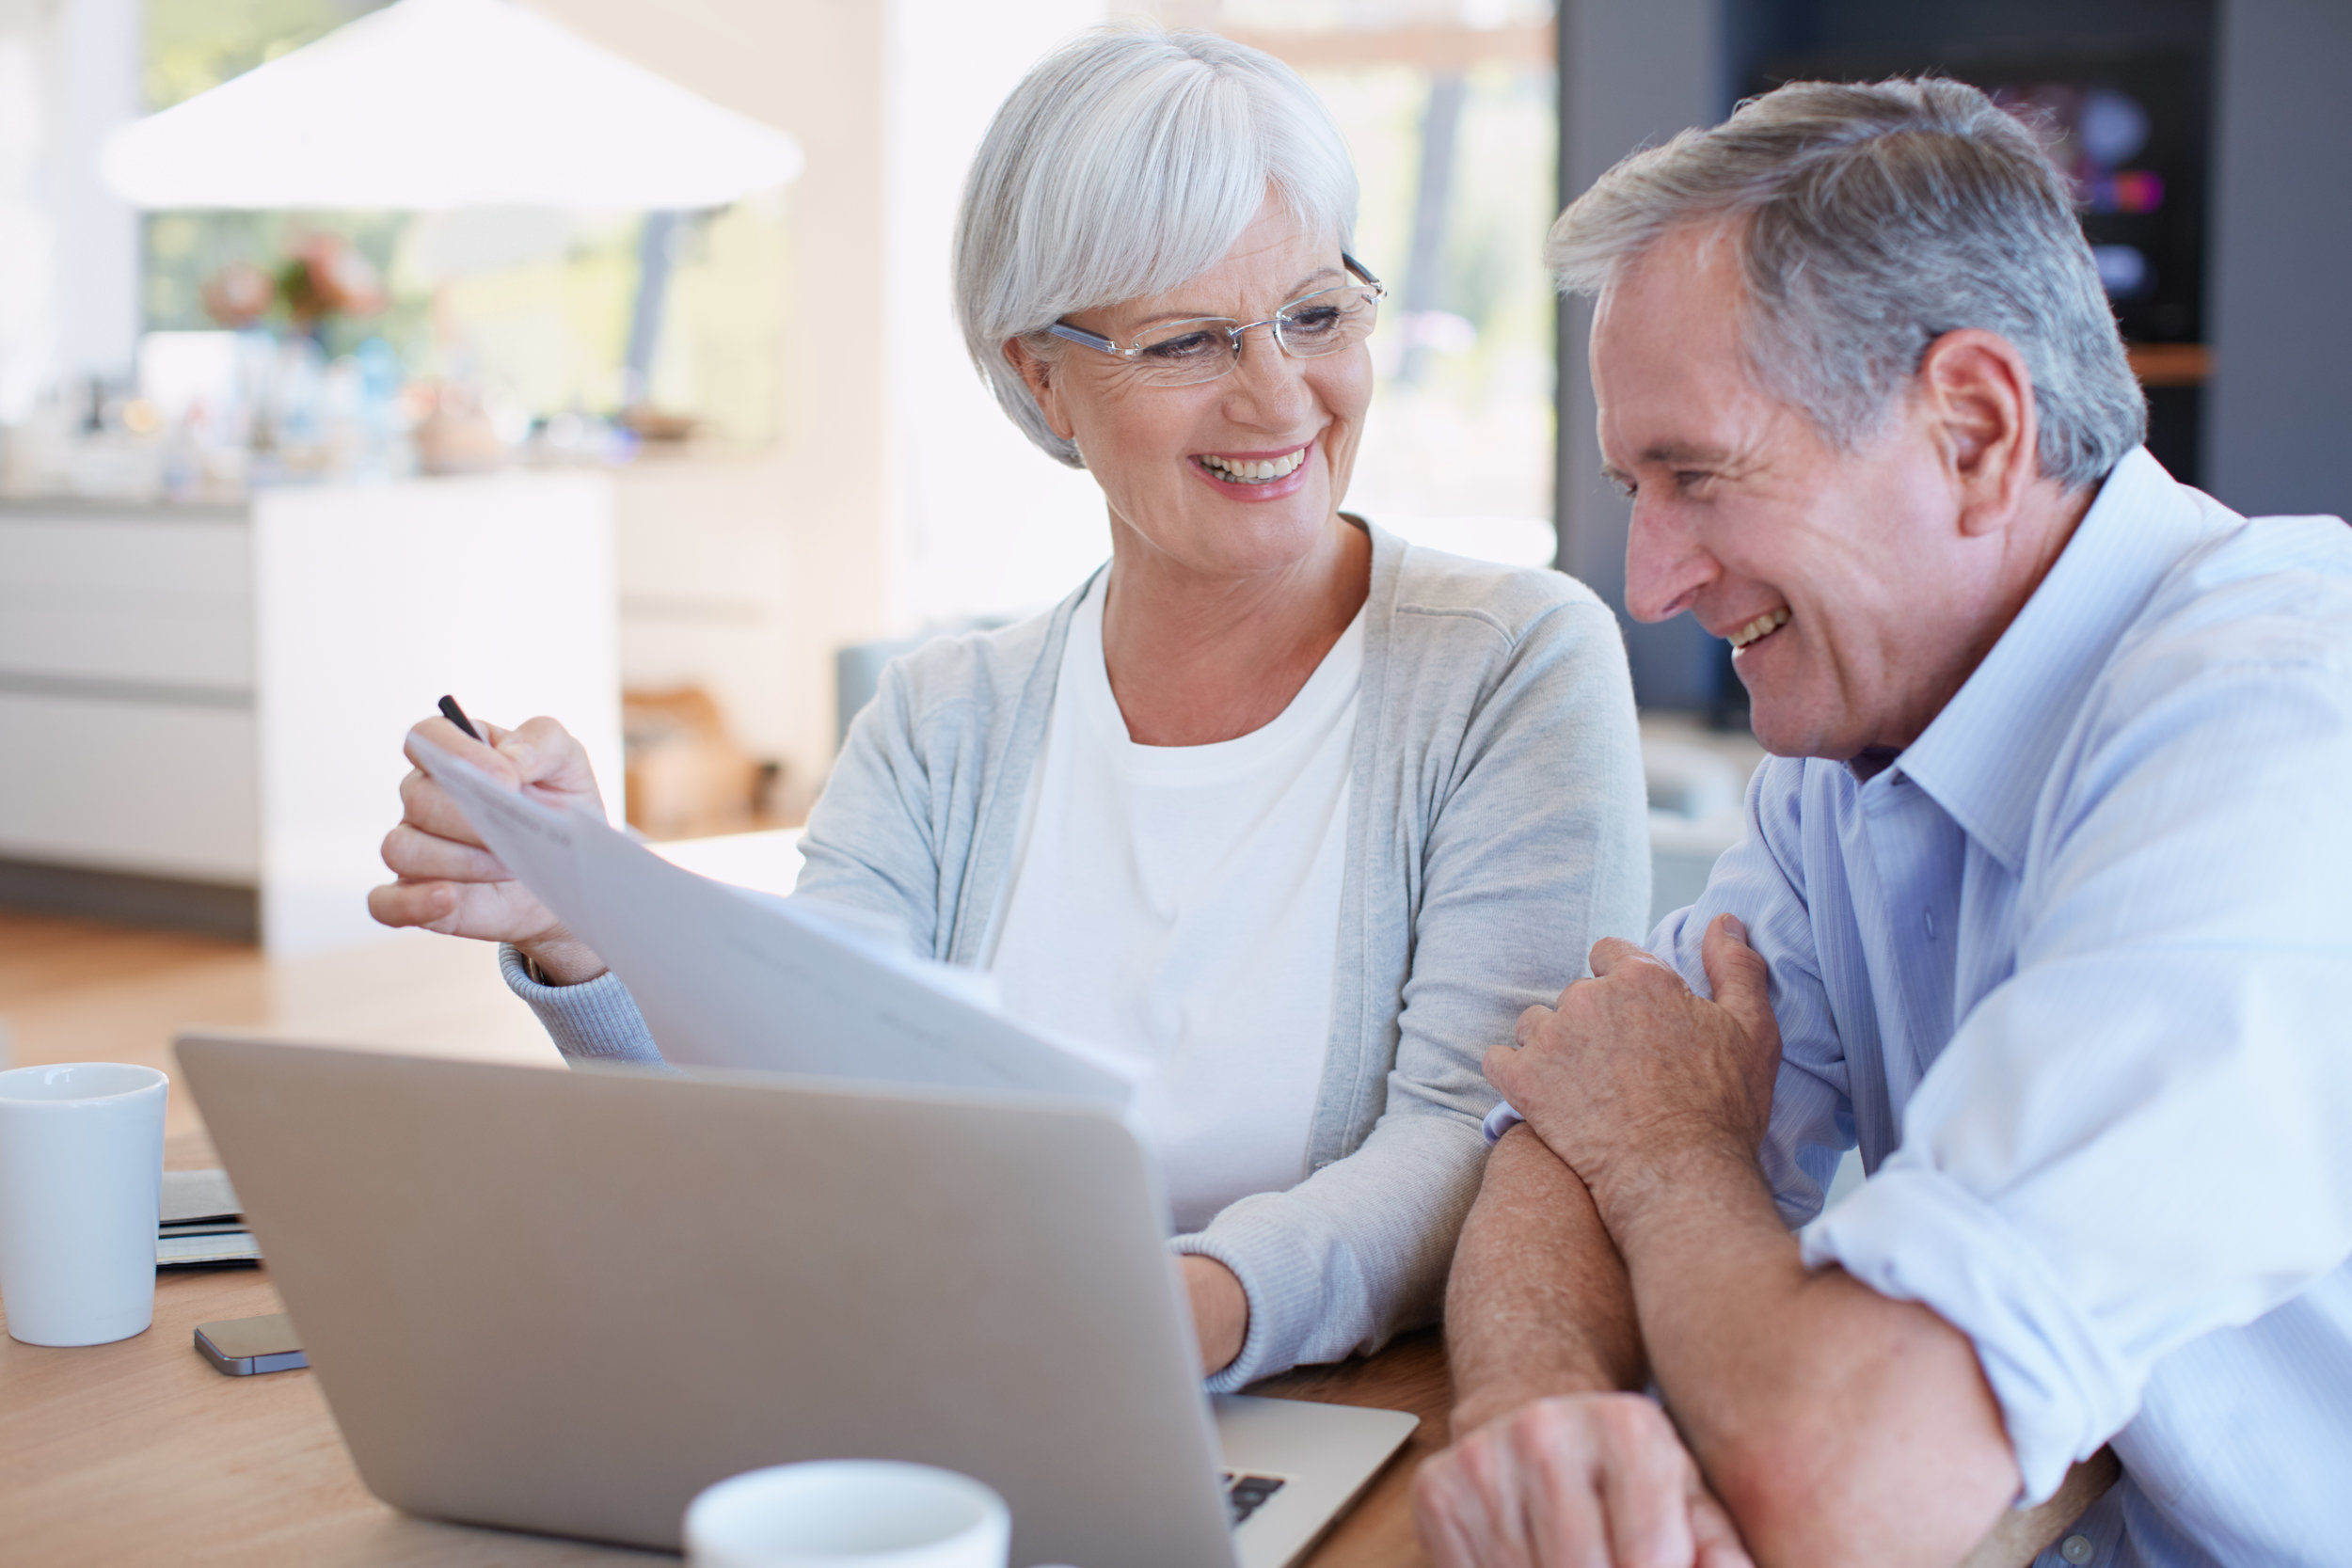 Couple with Papers Sitting at Computer_iStock-495809094.jpg